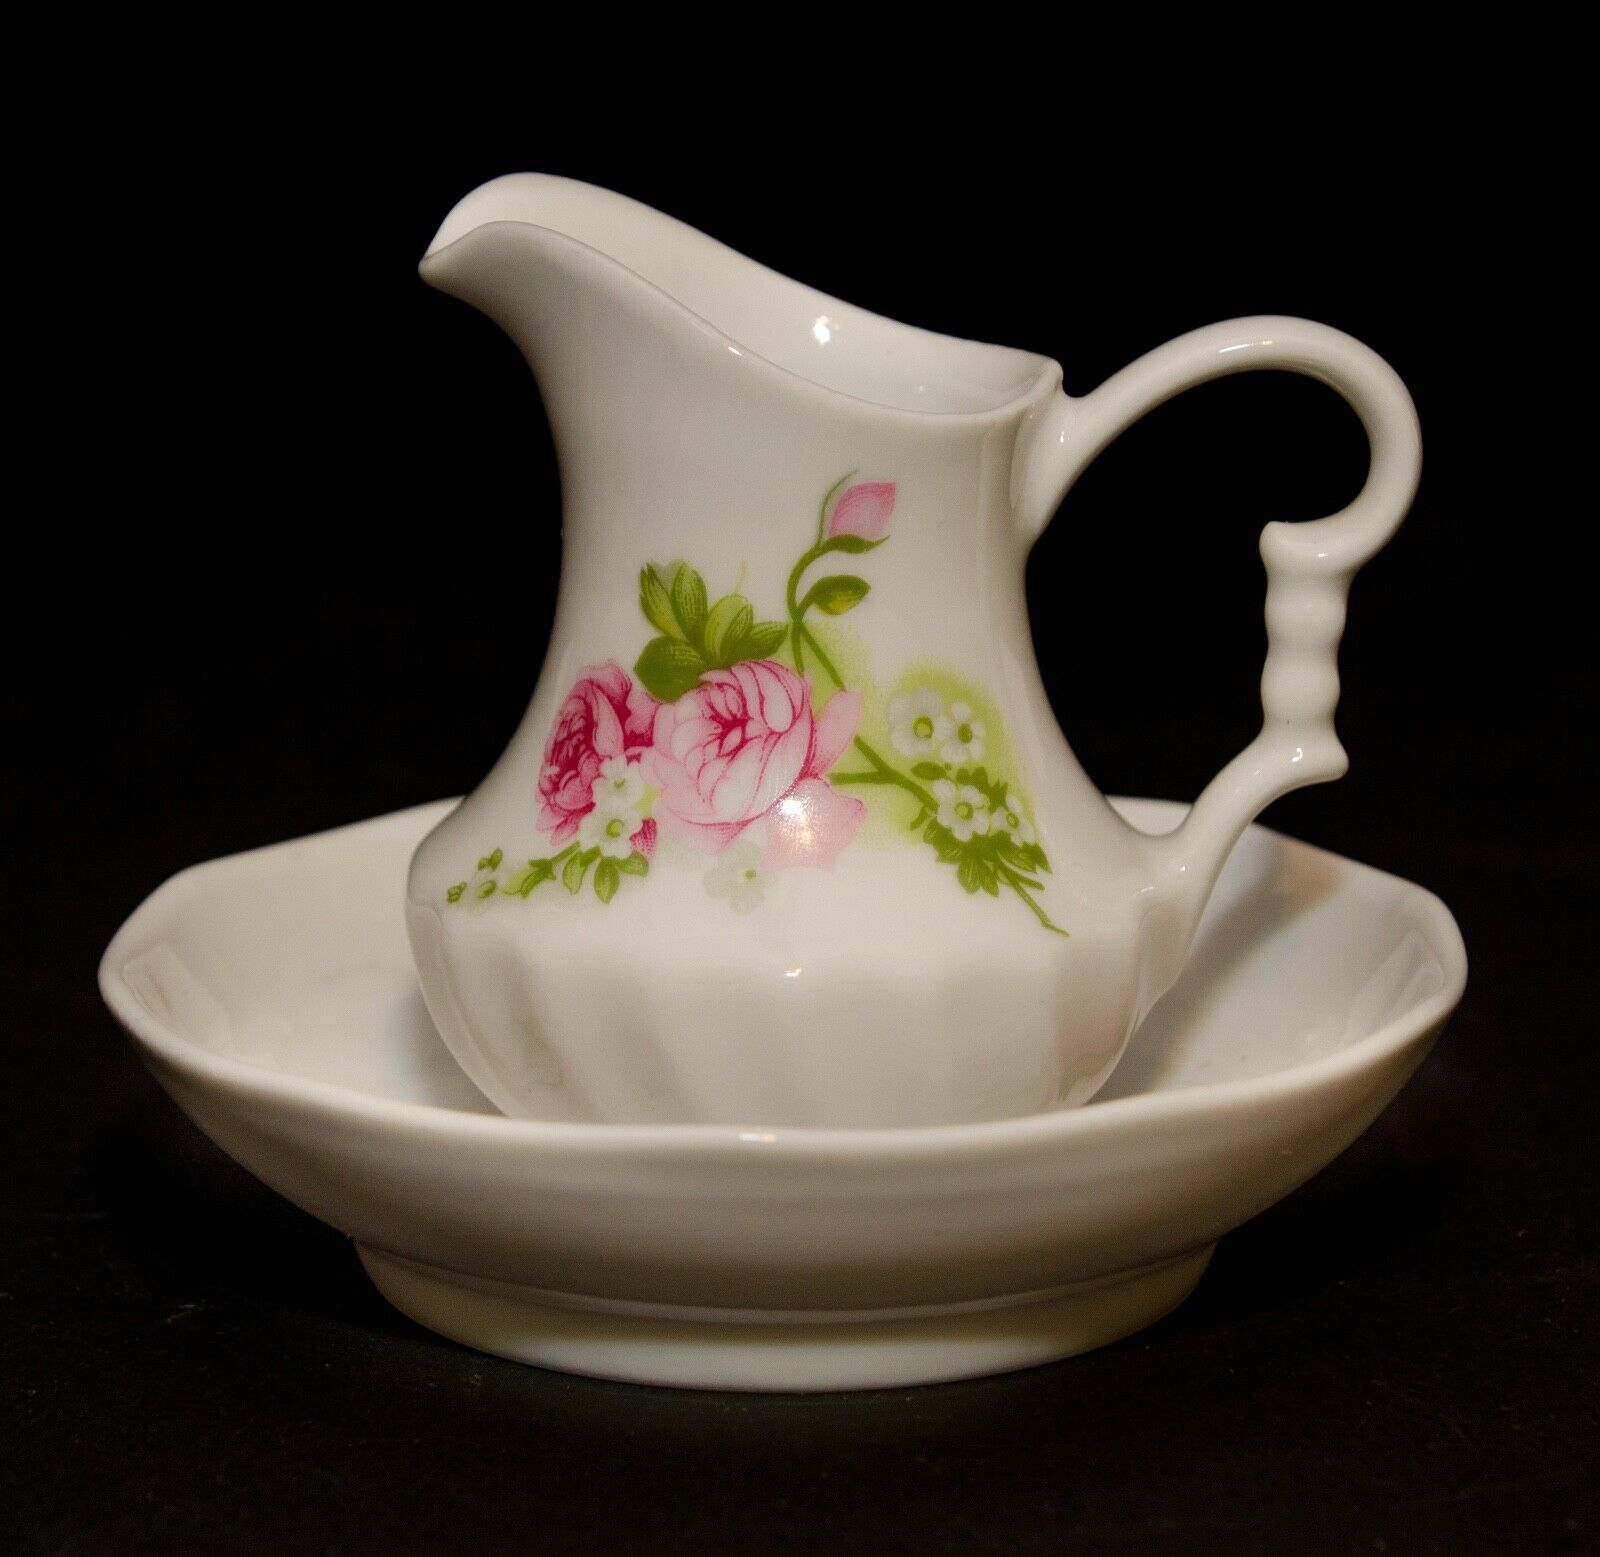 Primary image for Vintage Miniature Small Schwarzenhammer Porzellan Roses Water Pitcher and Dish